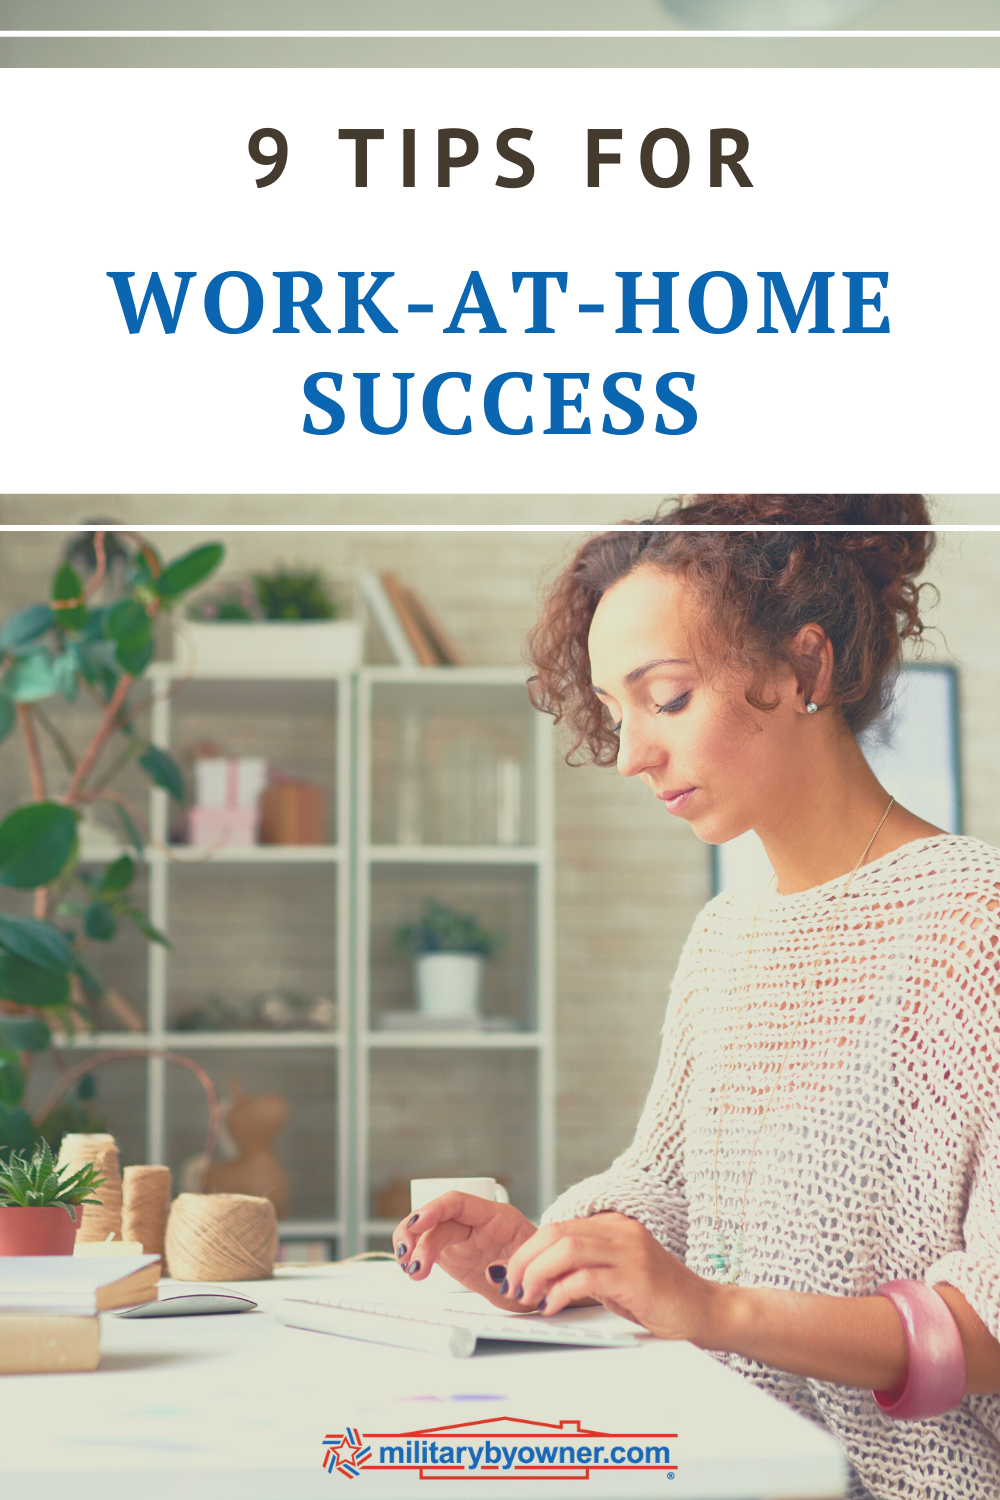 9 Tips for Work-at-Home Success